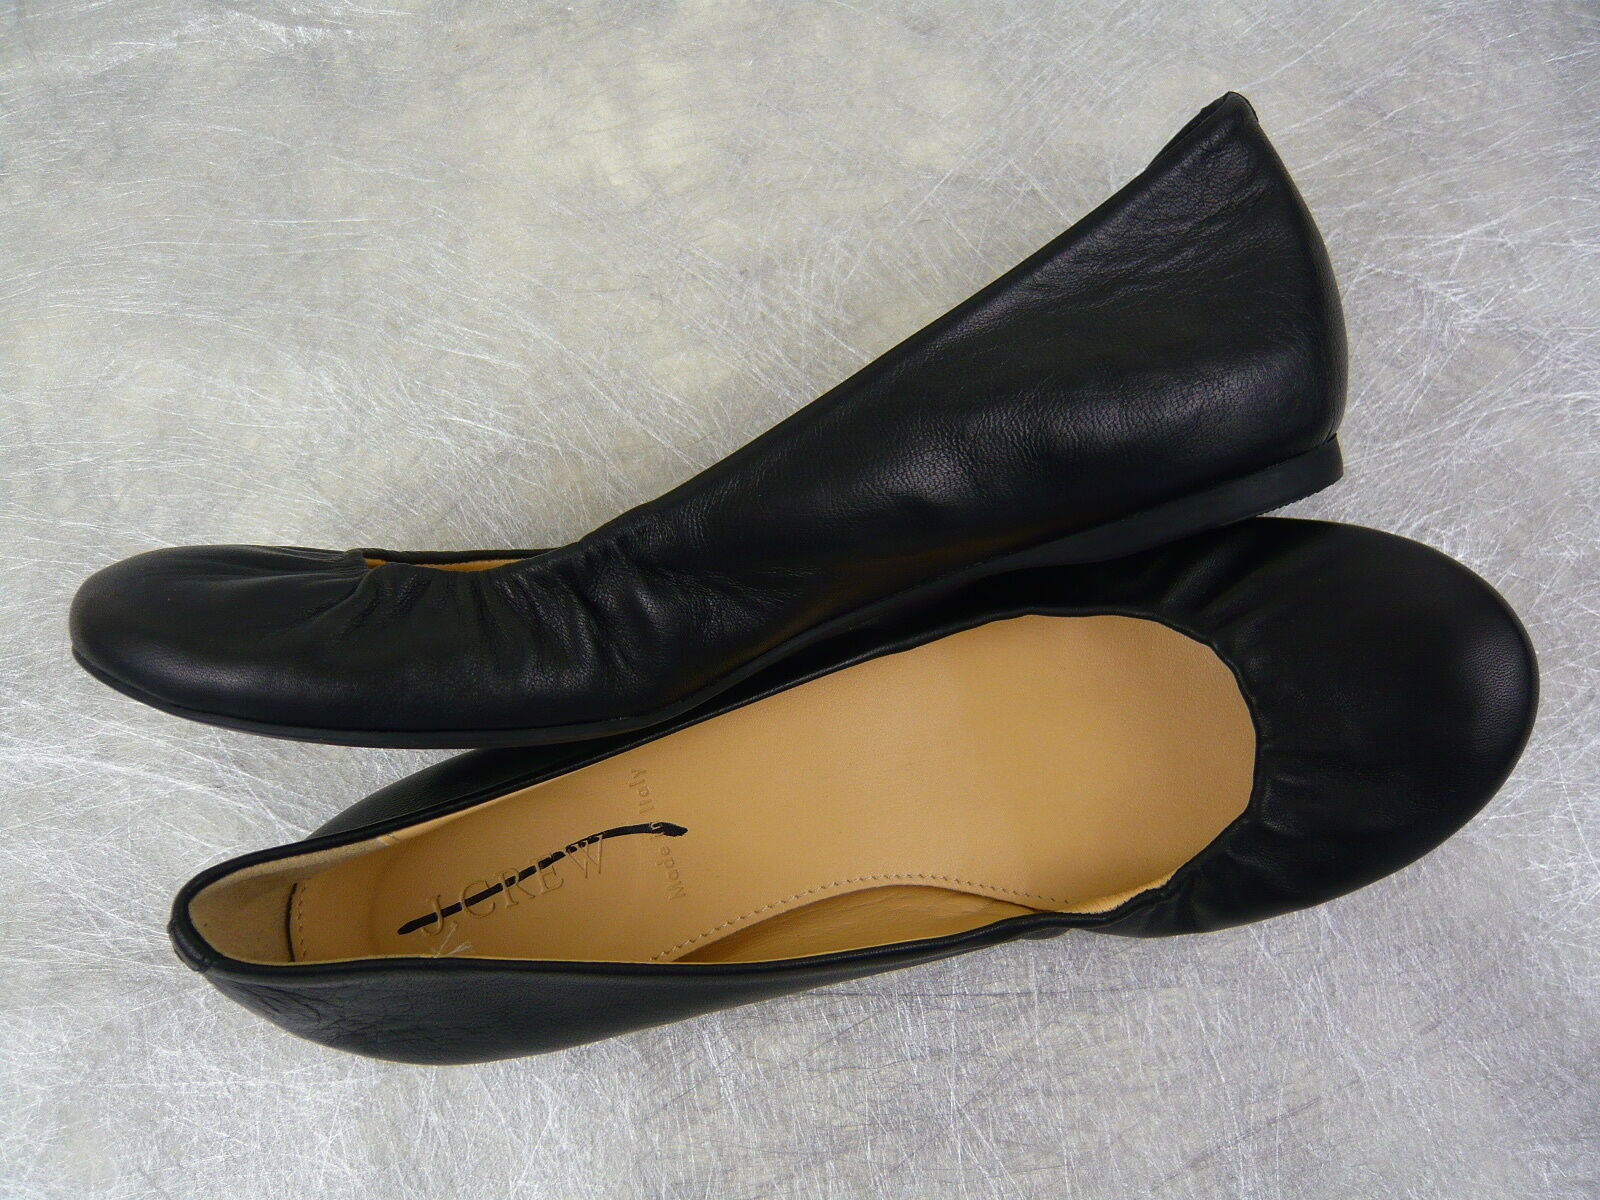 NEW J. CREW CECE LEATHER BALLET FLATS BLACK SIZE 6 Made Made 6 in ITALY f0fad0